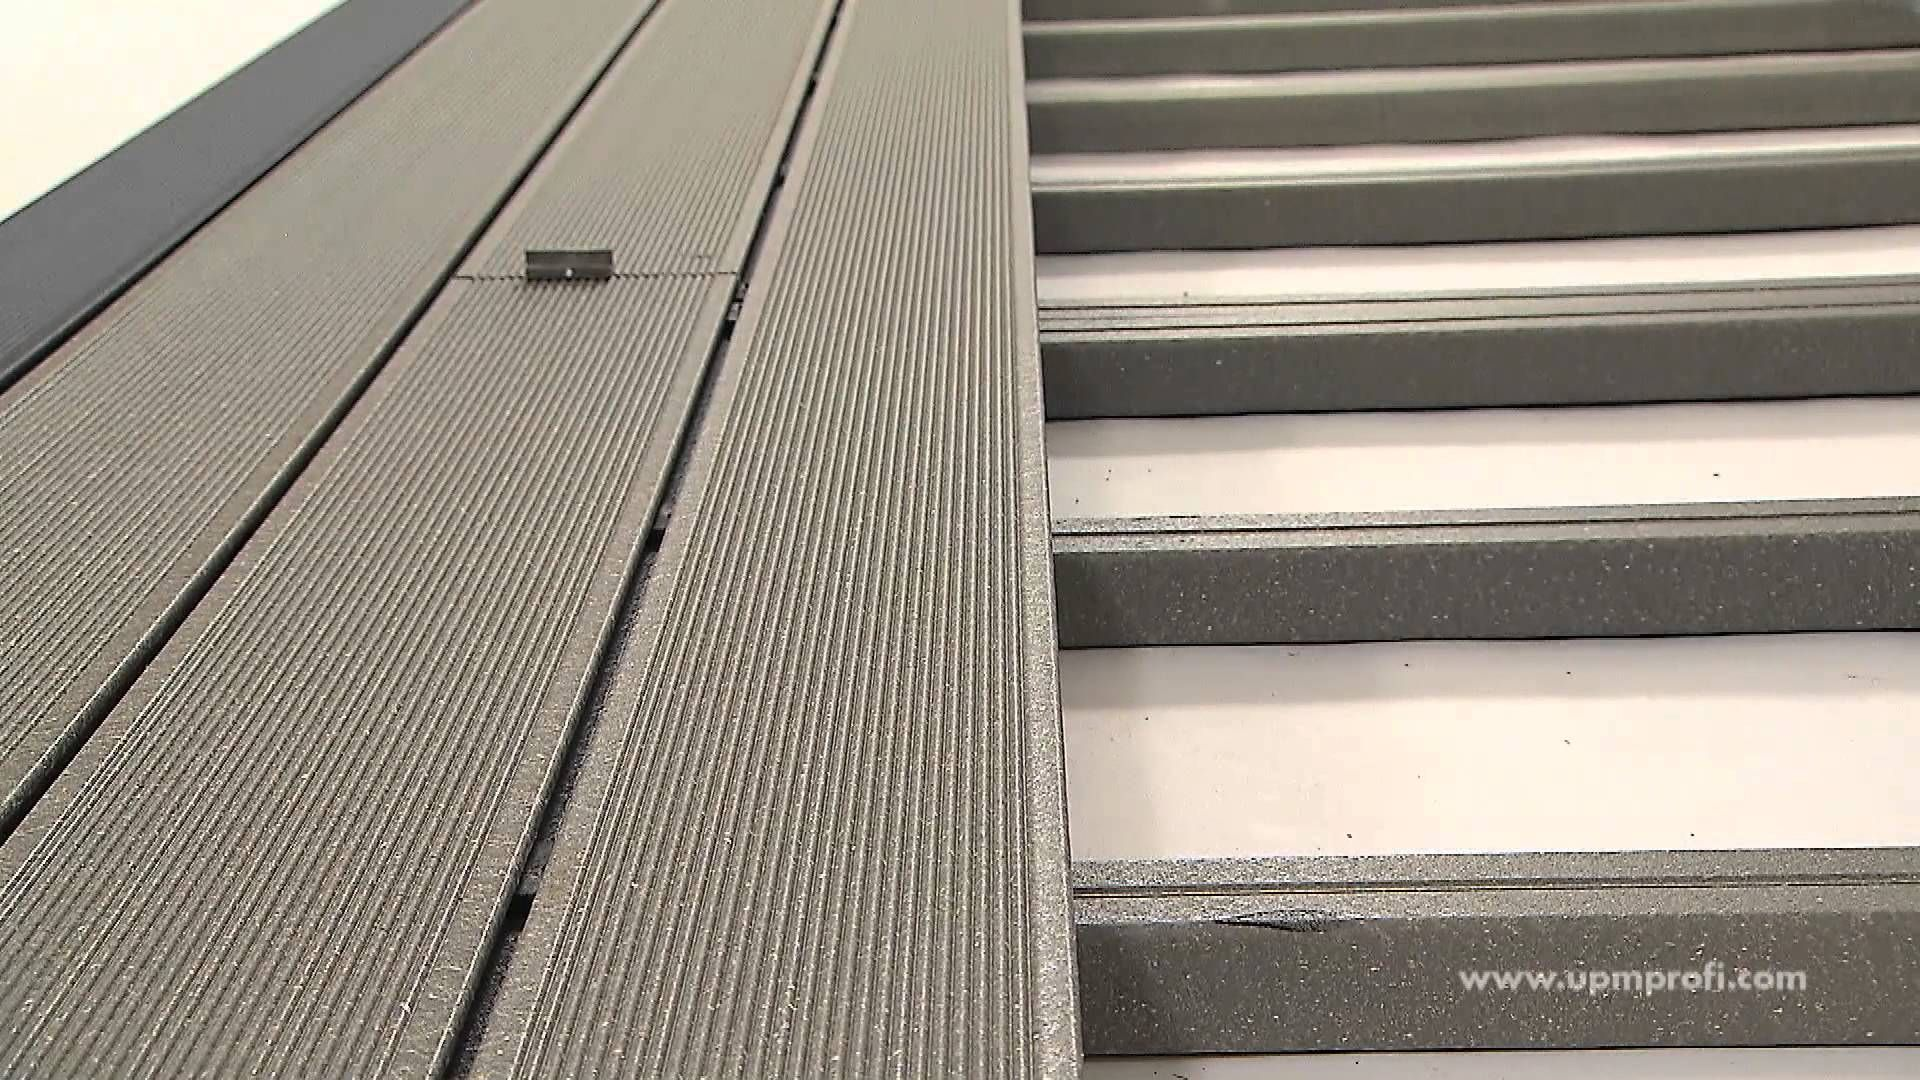 How To Install Upm Profi Deck Composite Terrace Correctly Watch